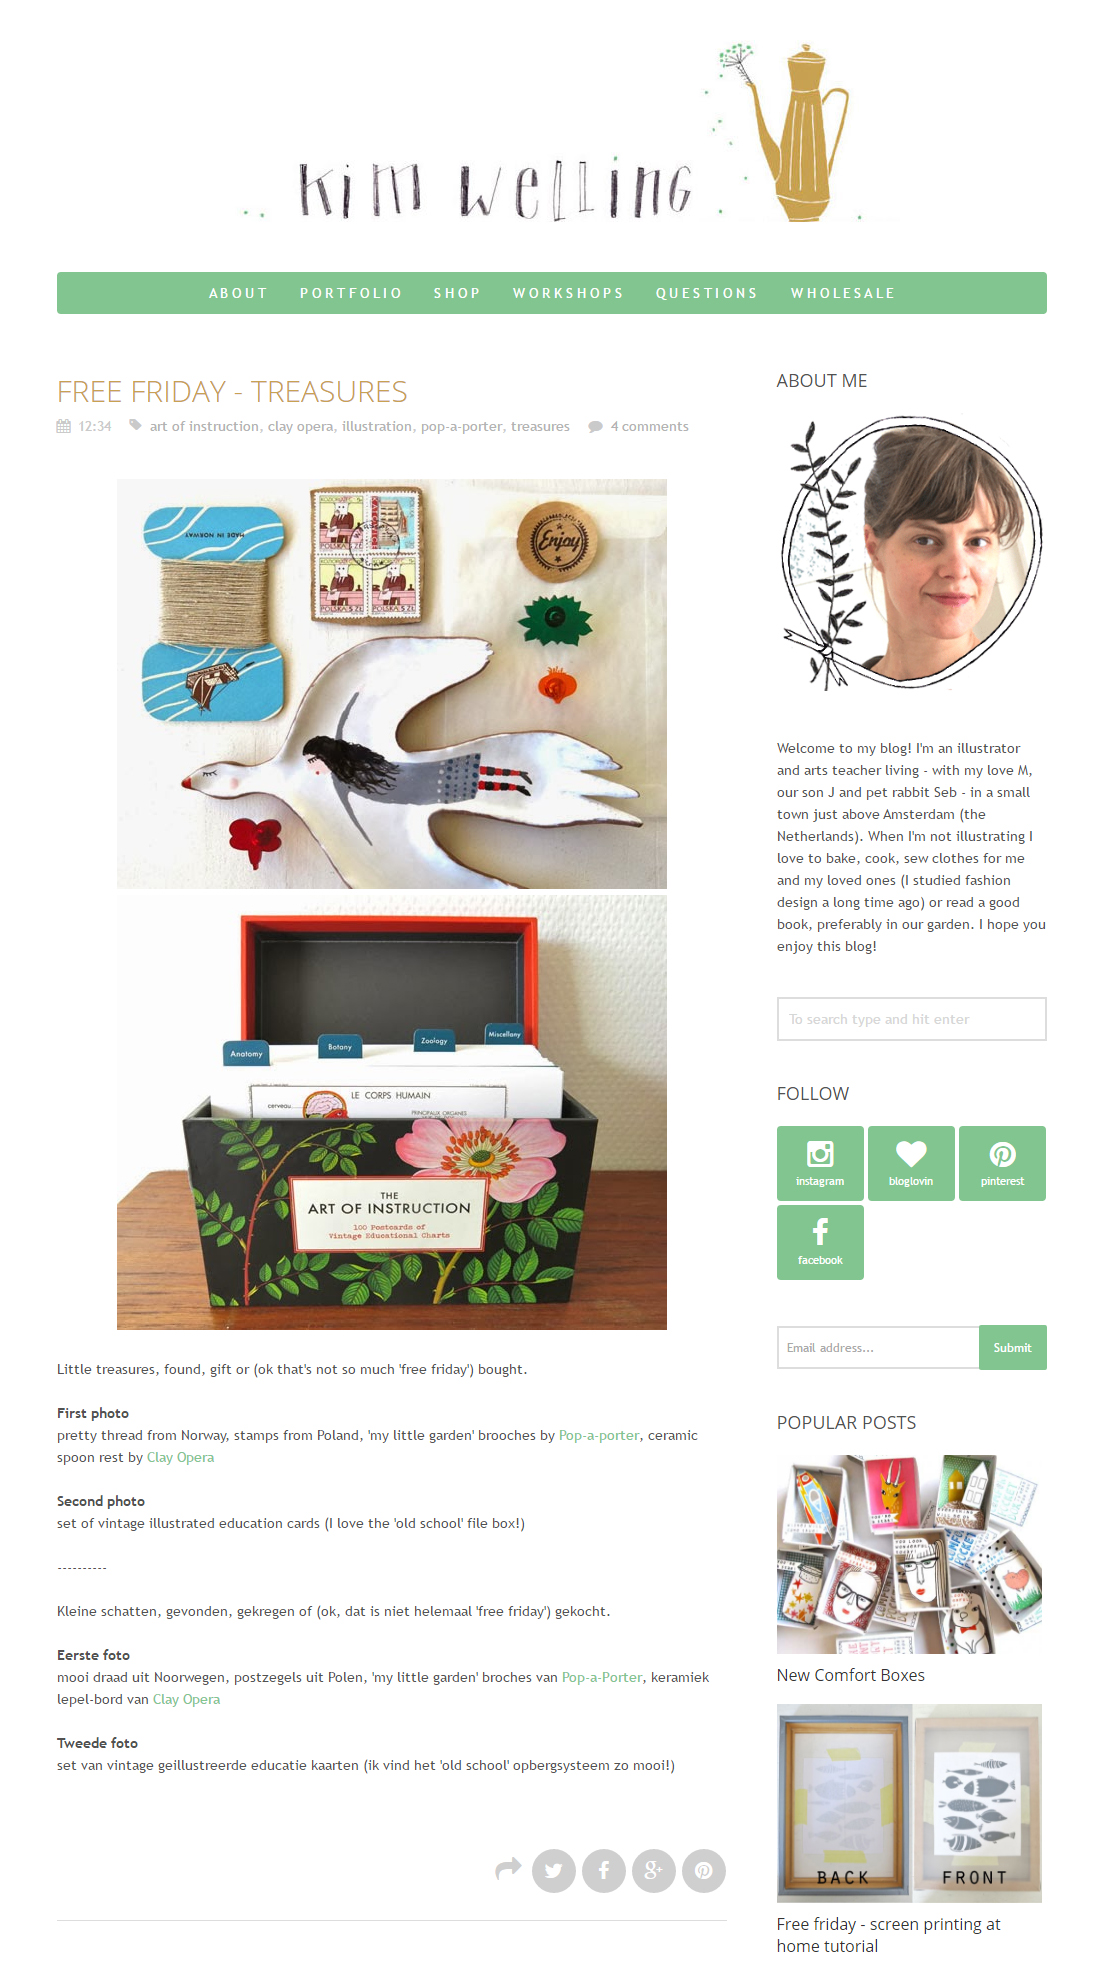 pop-a-porter's 'My little garden' acrylic brooches on Kim Welling blog